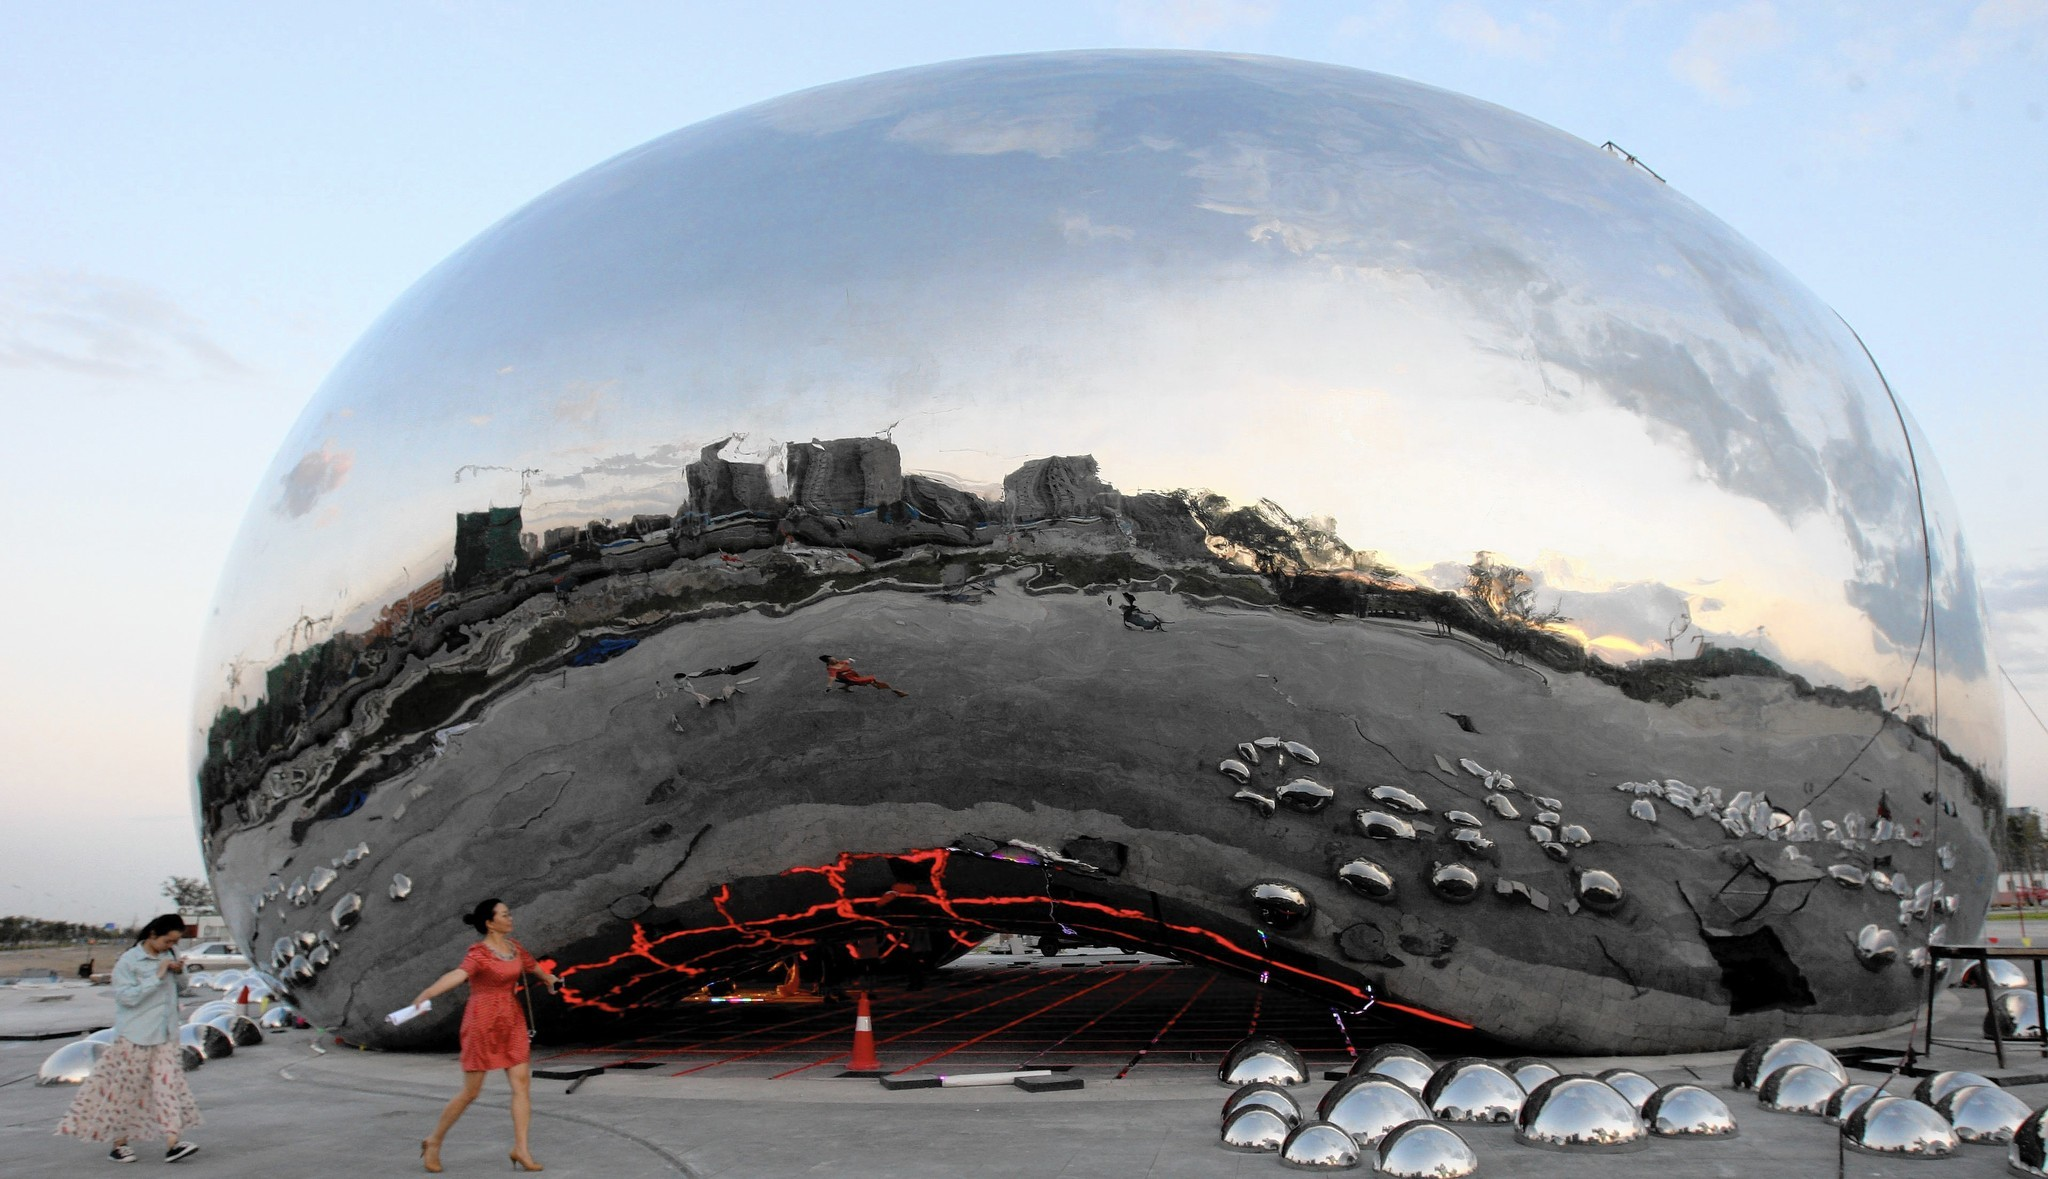 Chinese Sculpture Bears Striking Resemblance To The Bean